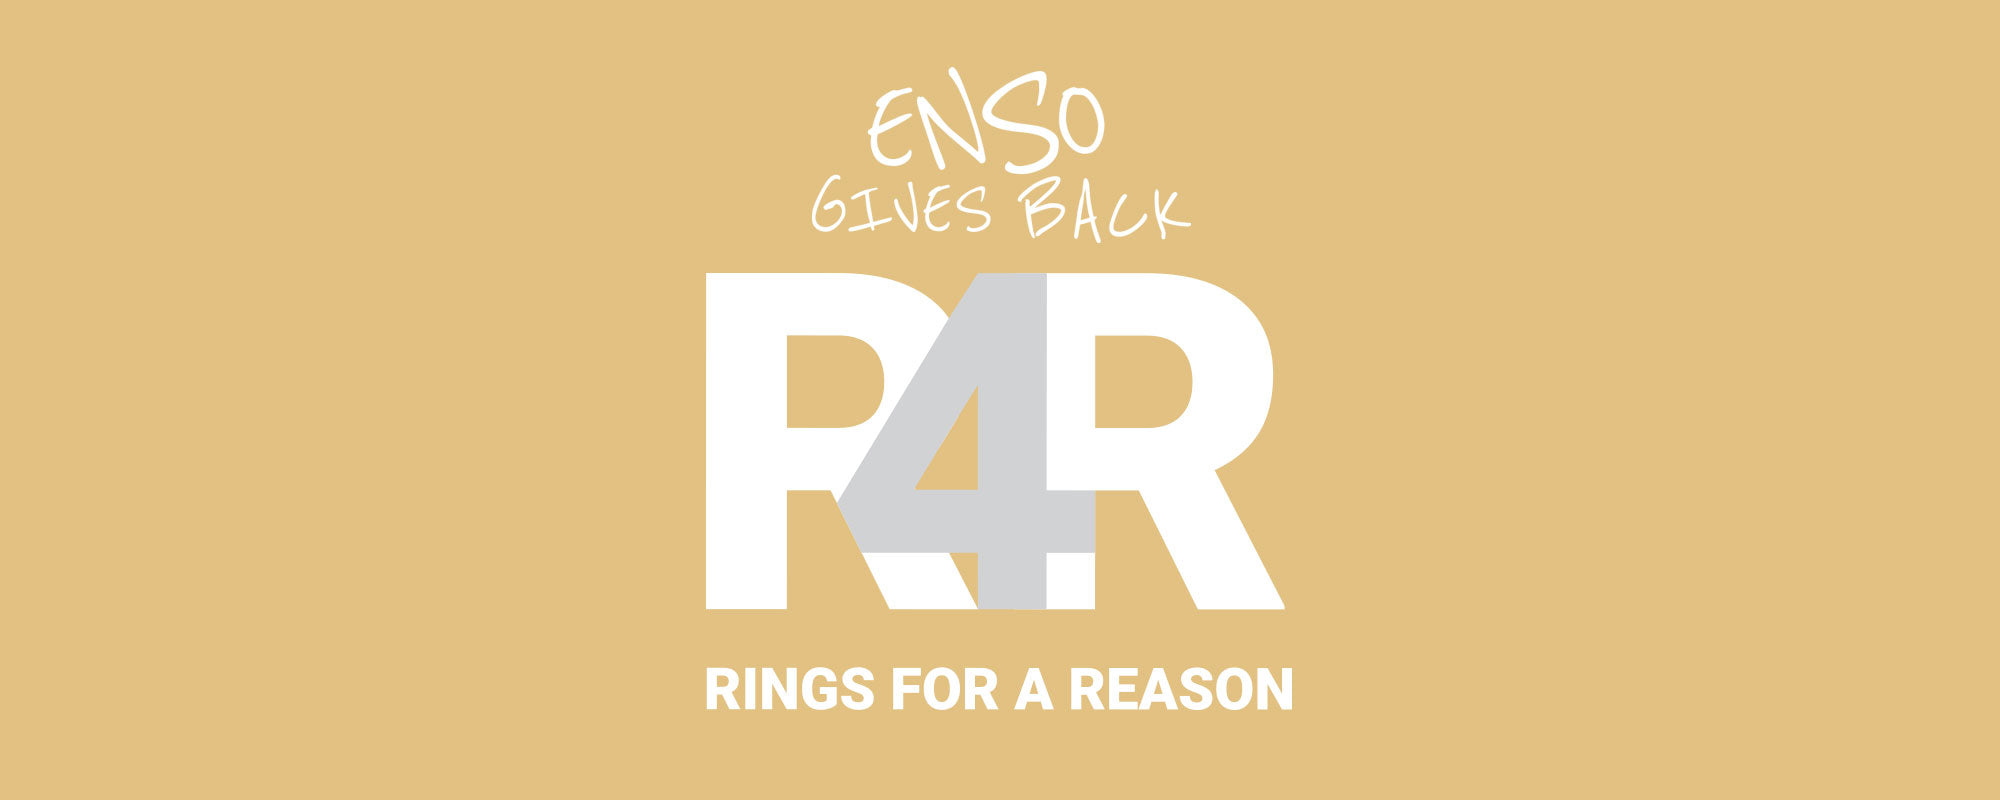 Enso Gives Back with Rings for a Reason